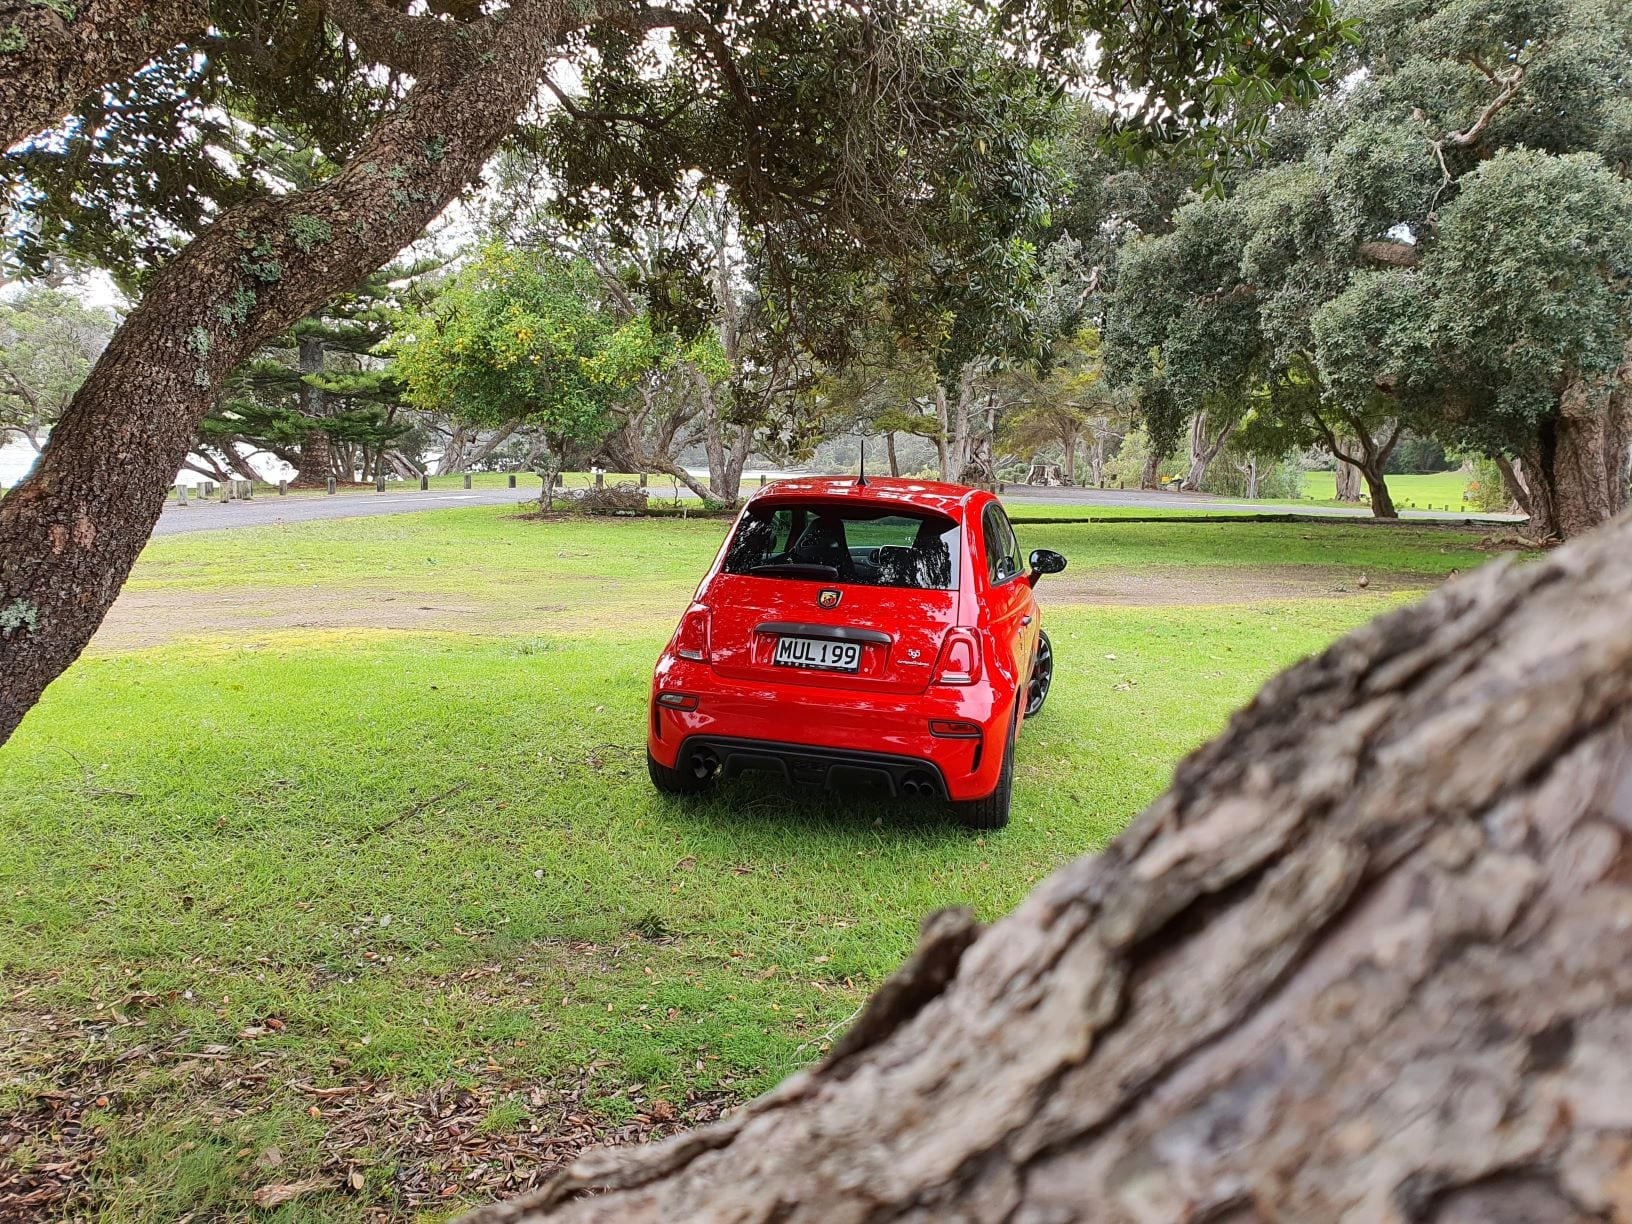 Looking at the red Abarth 595 through the trees.